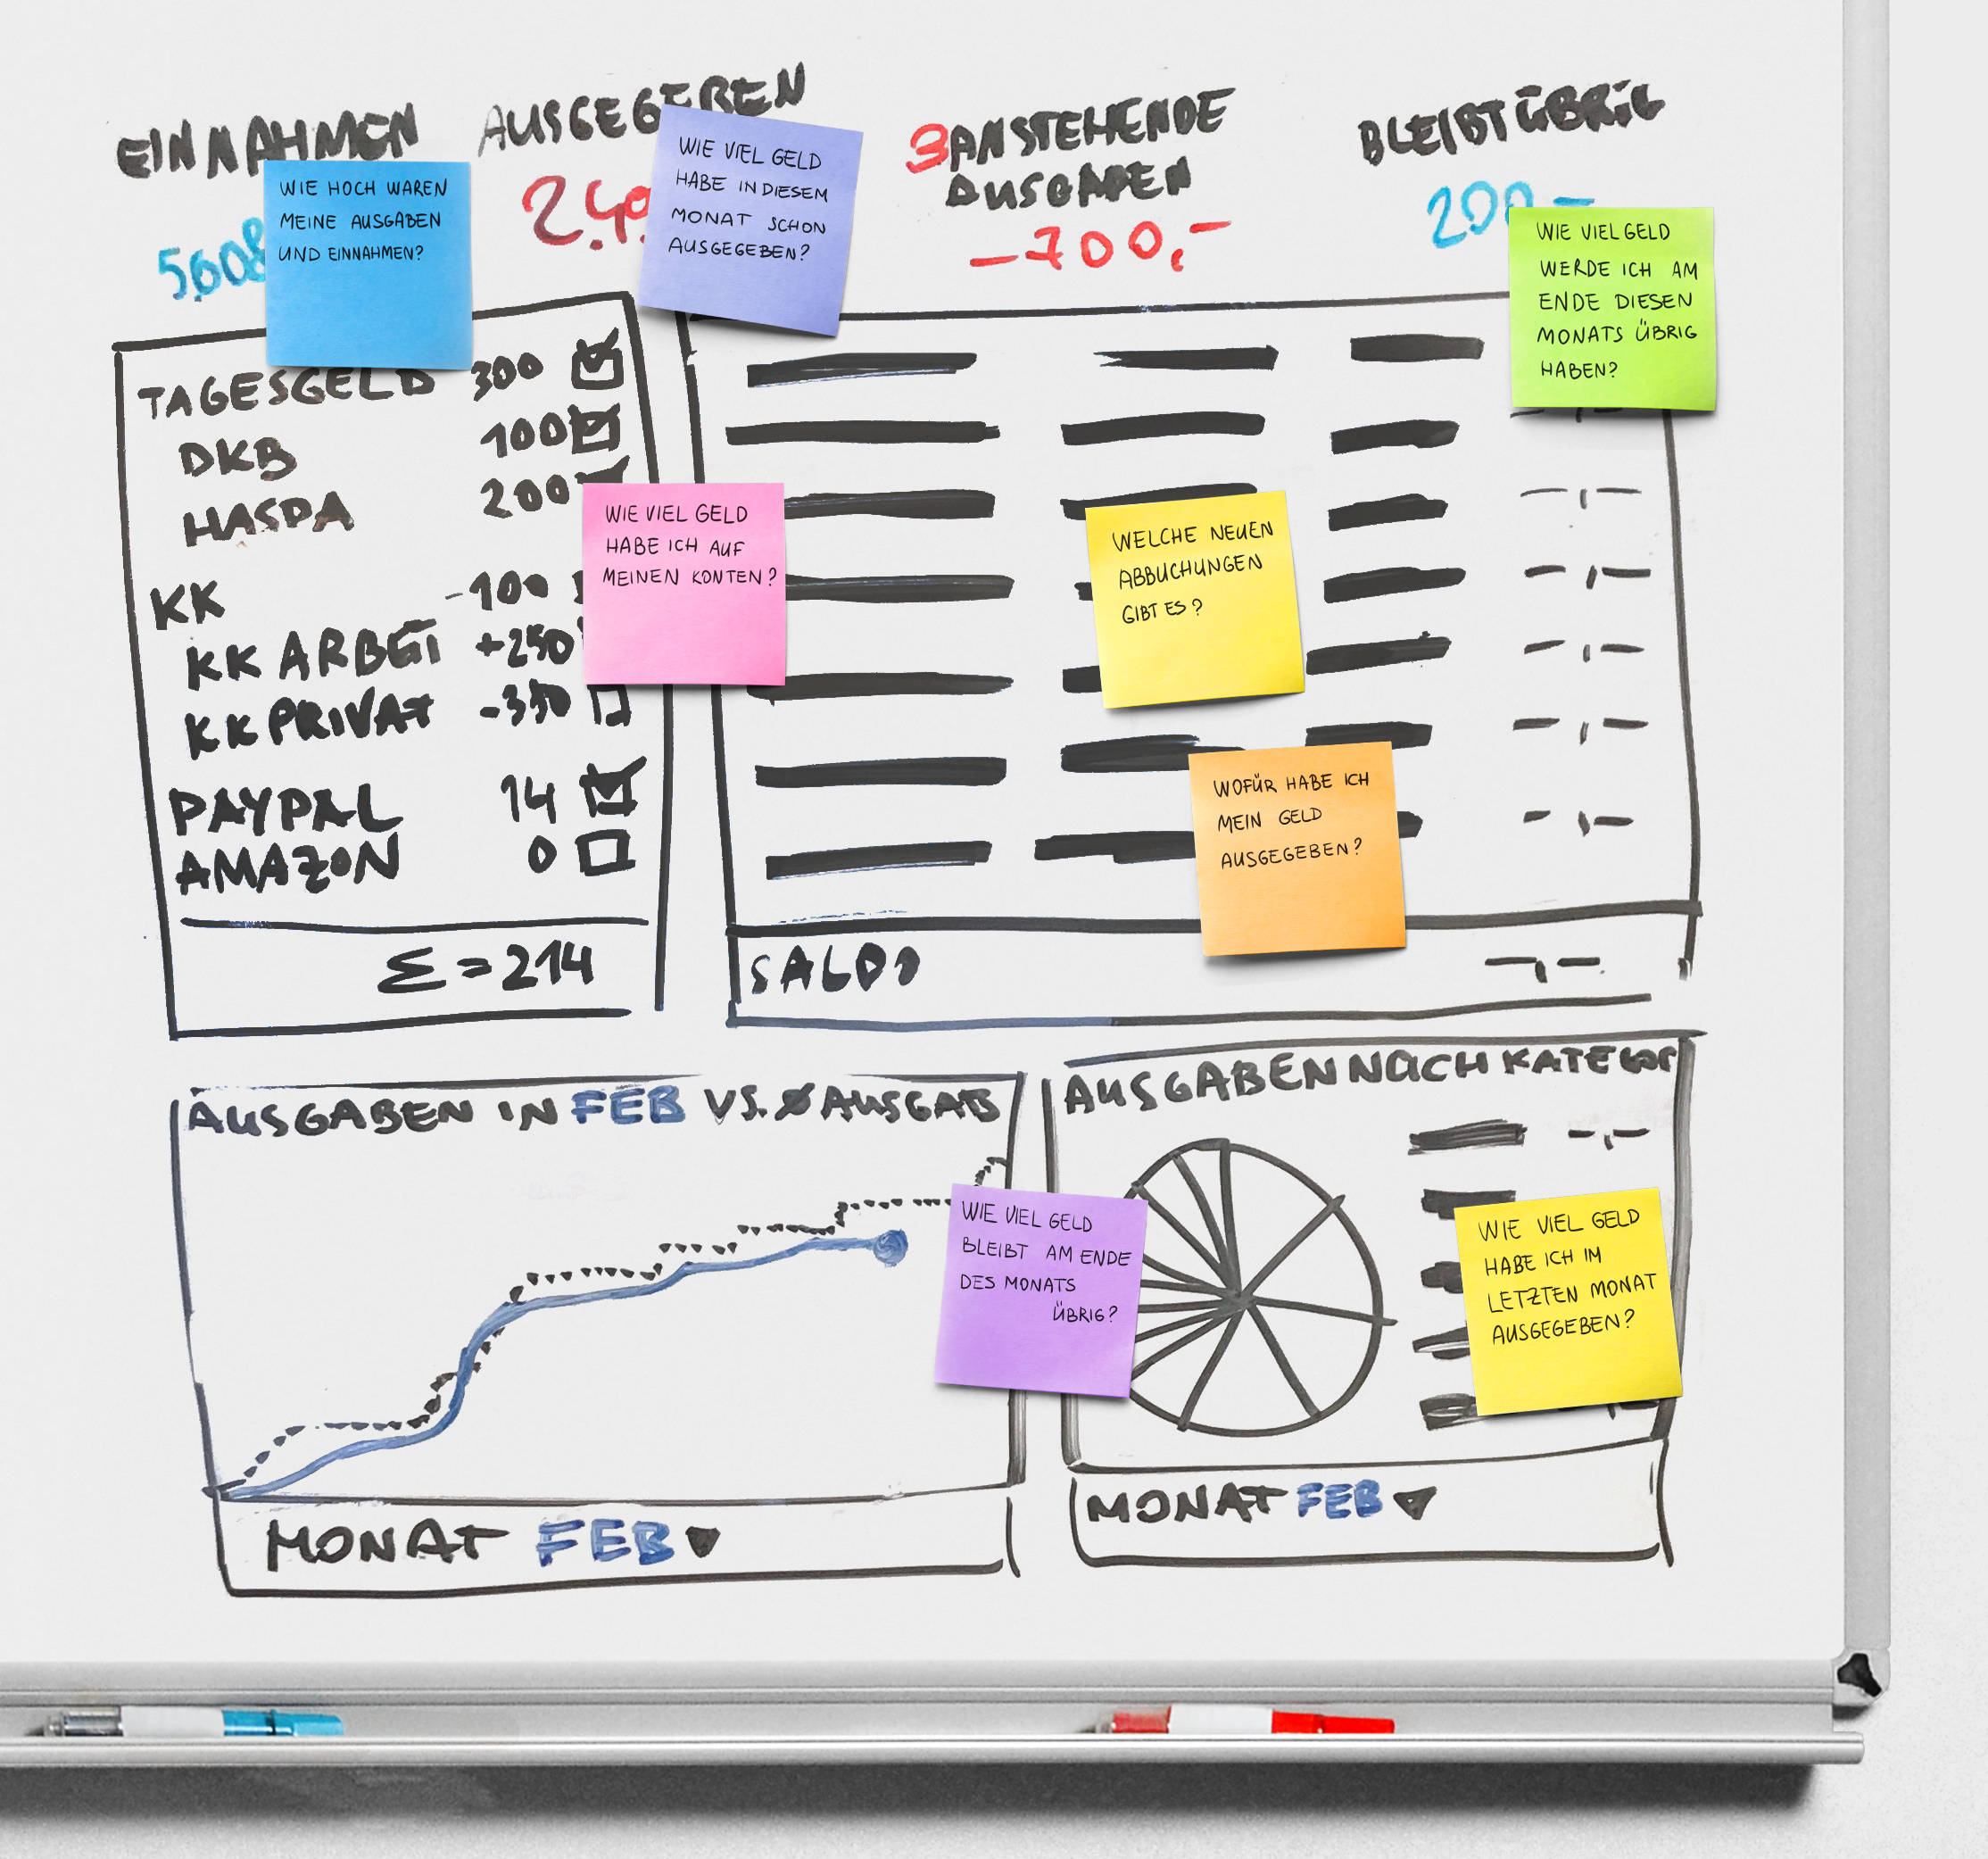 Whiteboard_Startseite_sticky-notes.png